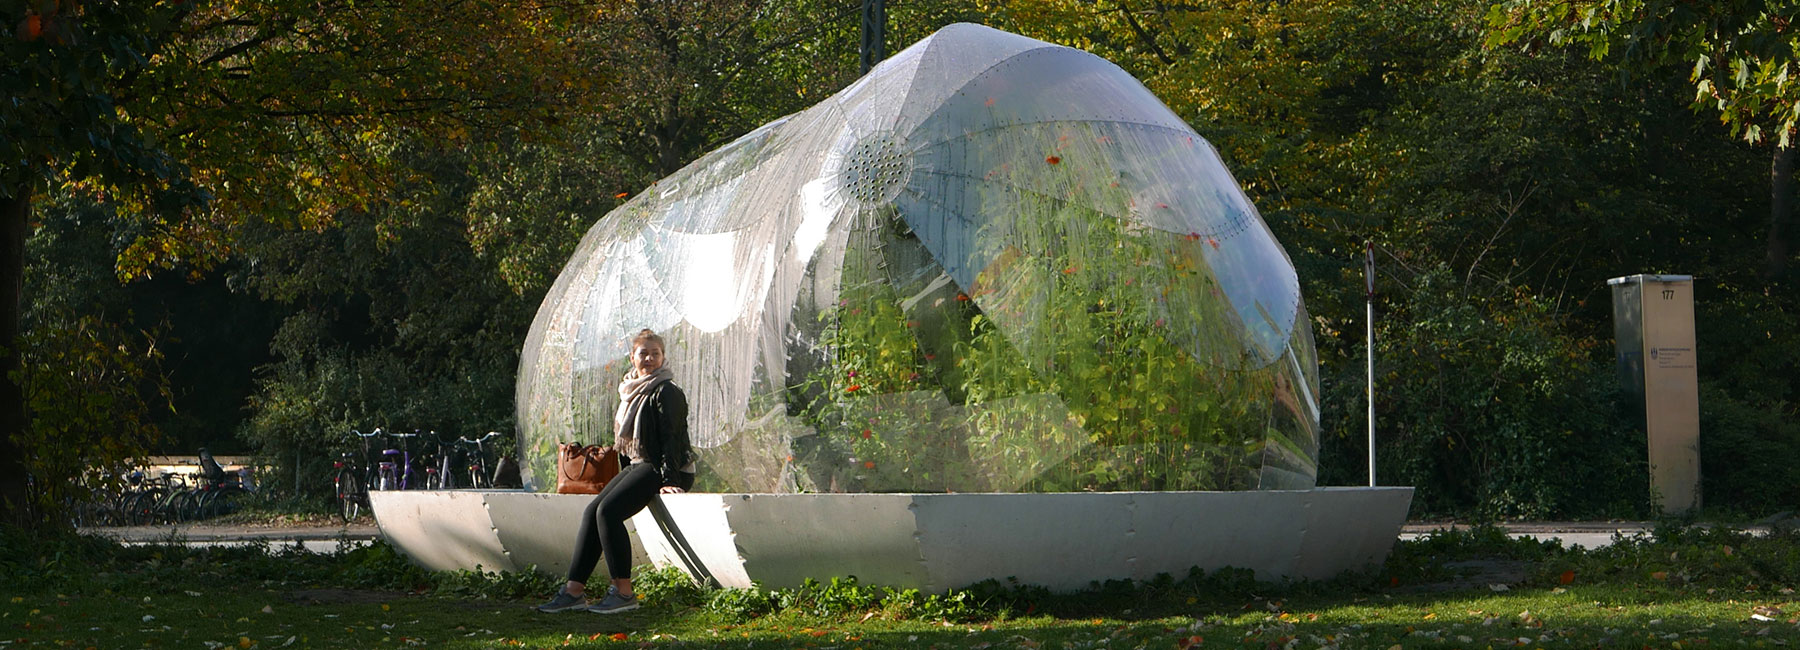 copenhagen greenhouse design.jpg